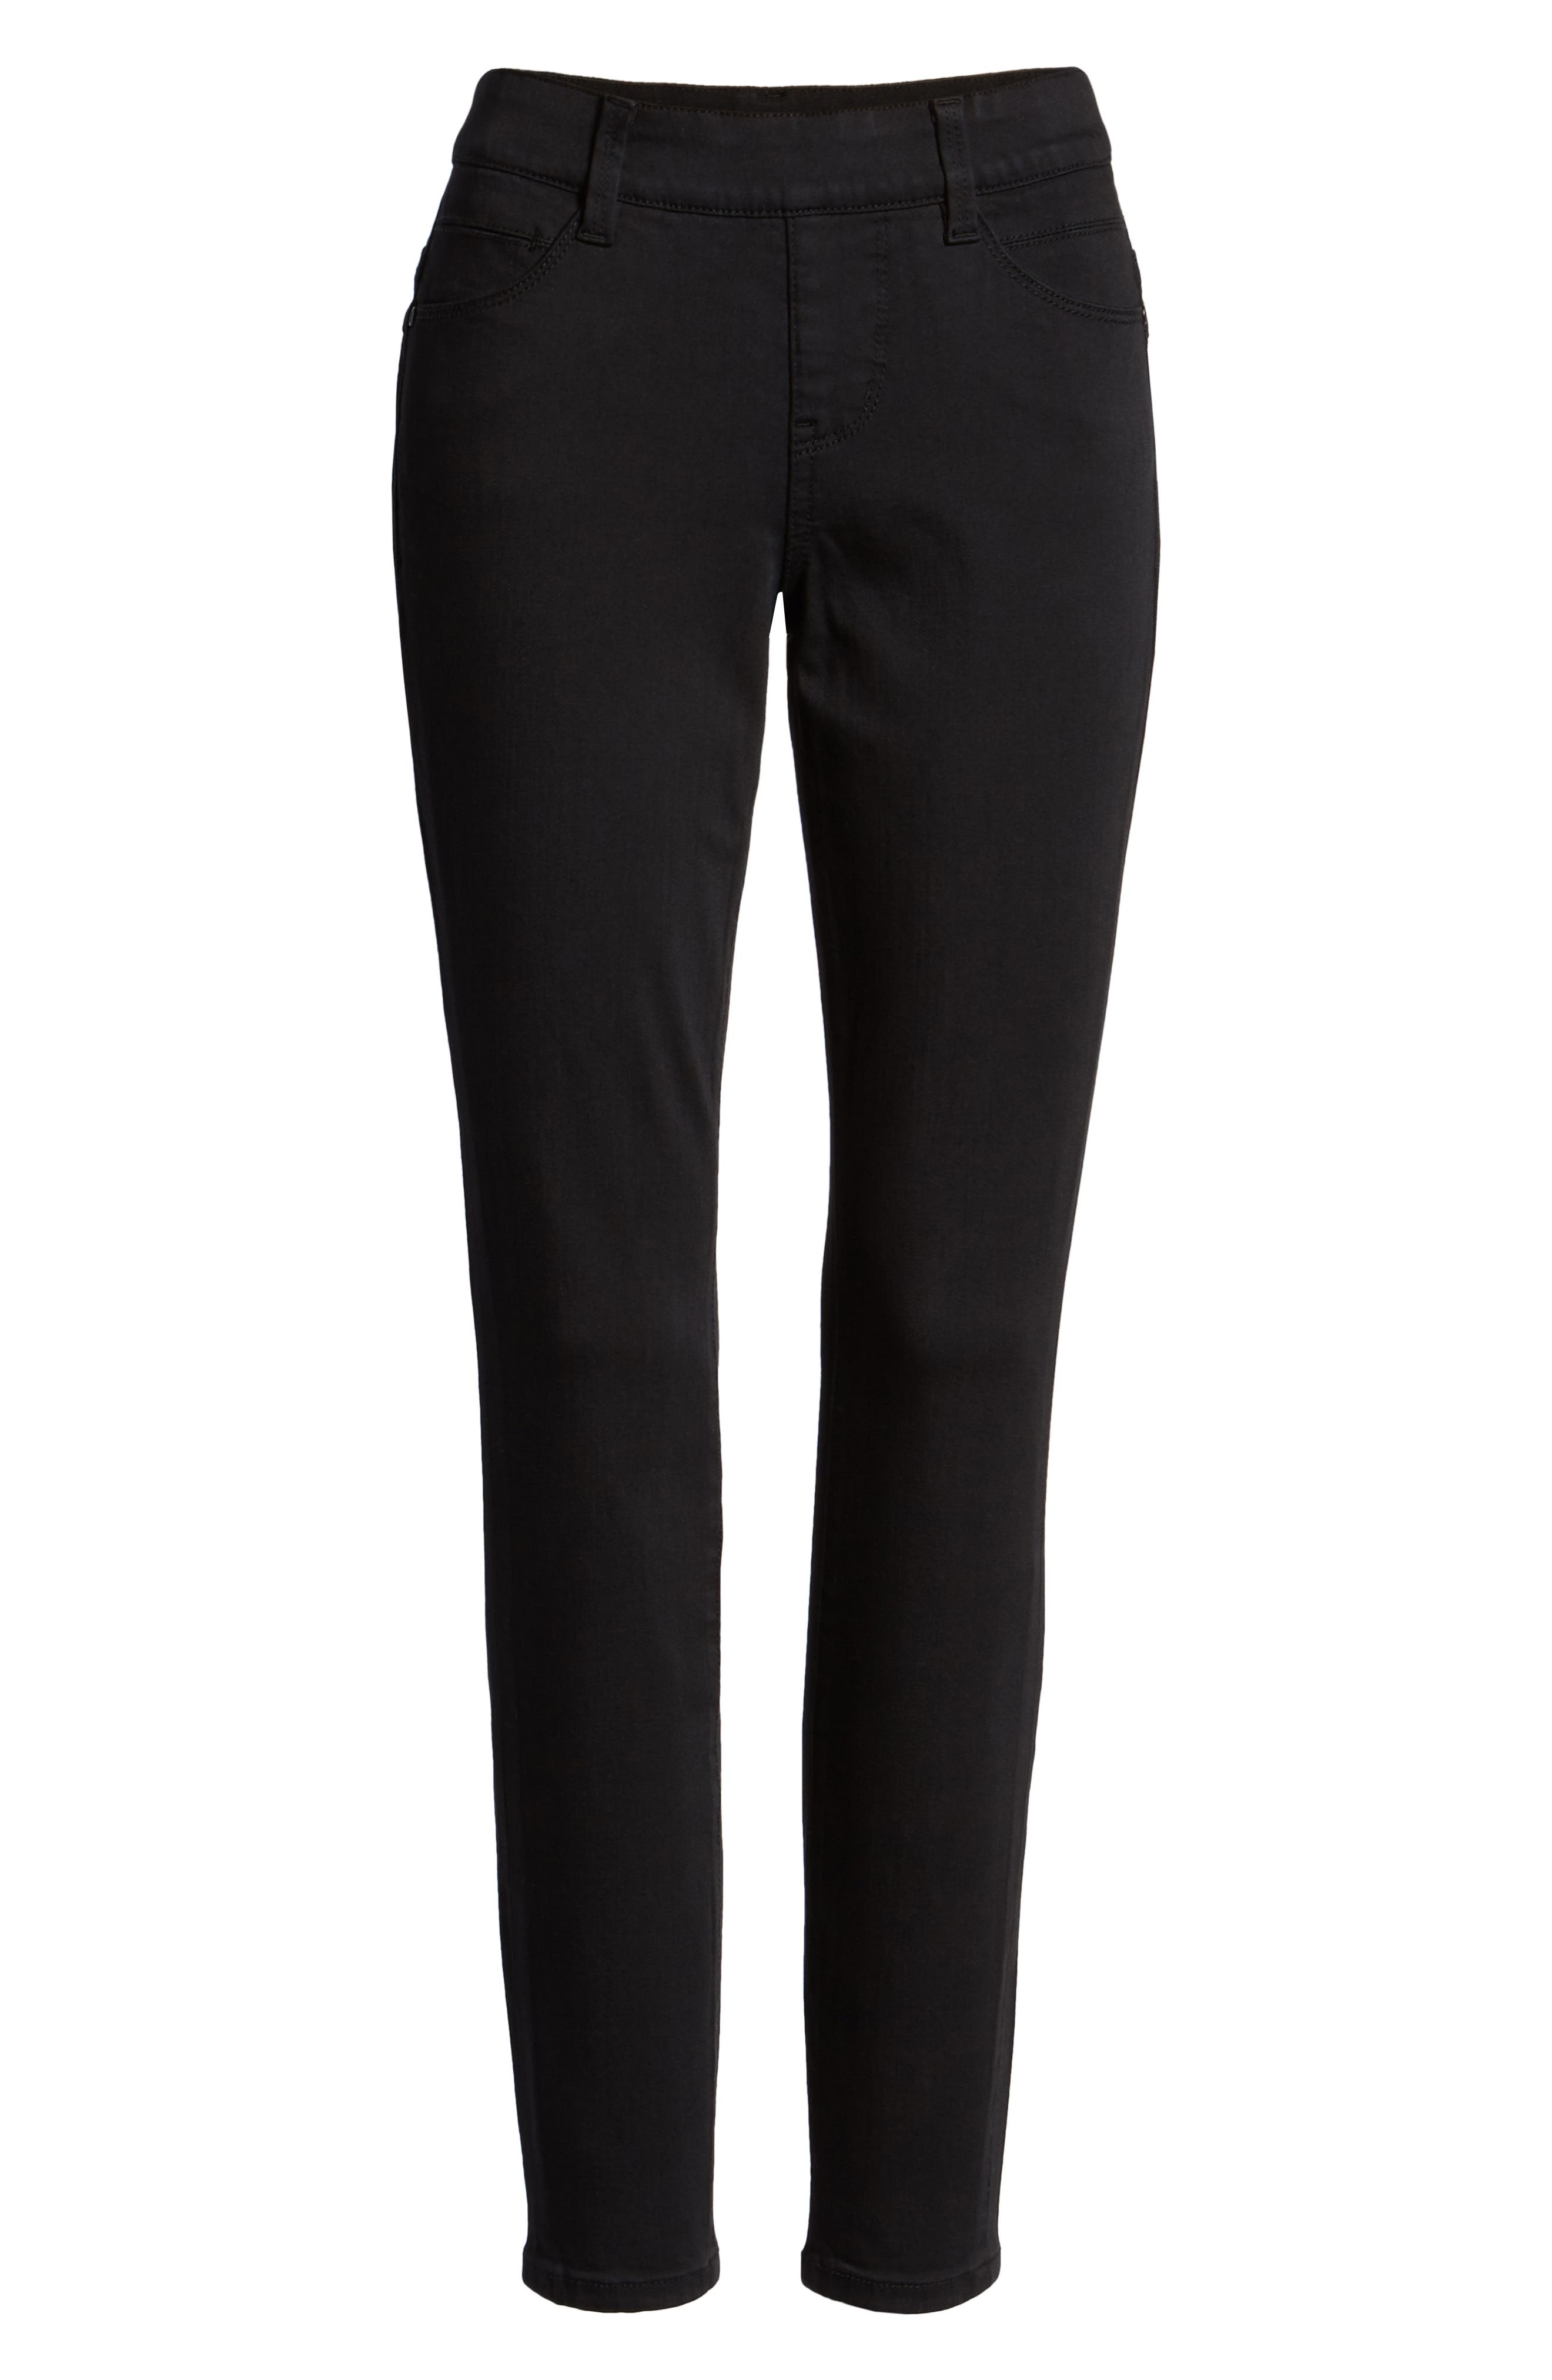 JAG JEANS, Bryn Pull-On Jeans, Alternate thumbnail 7, color, BLACK